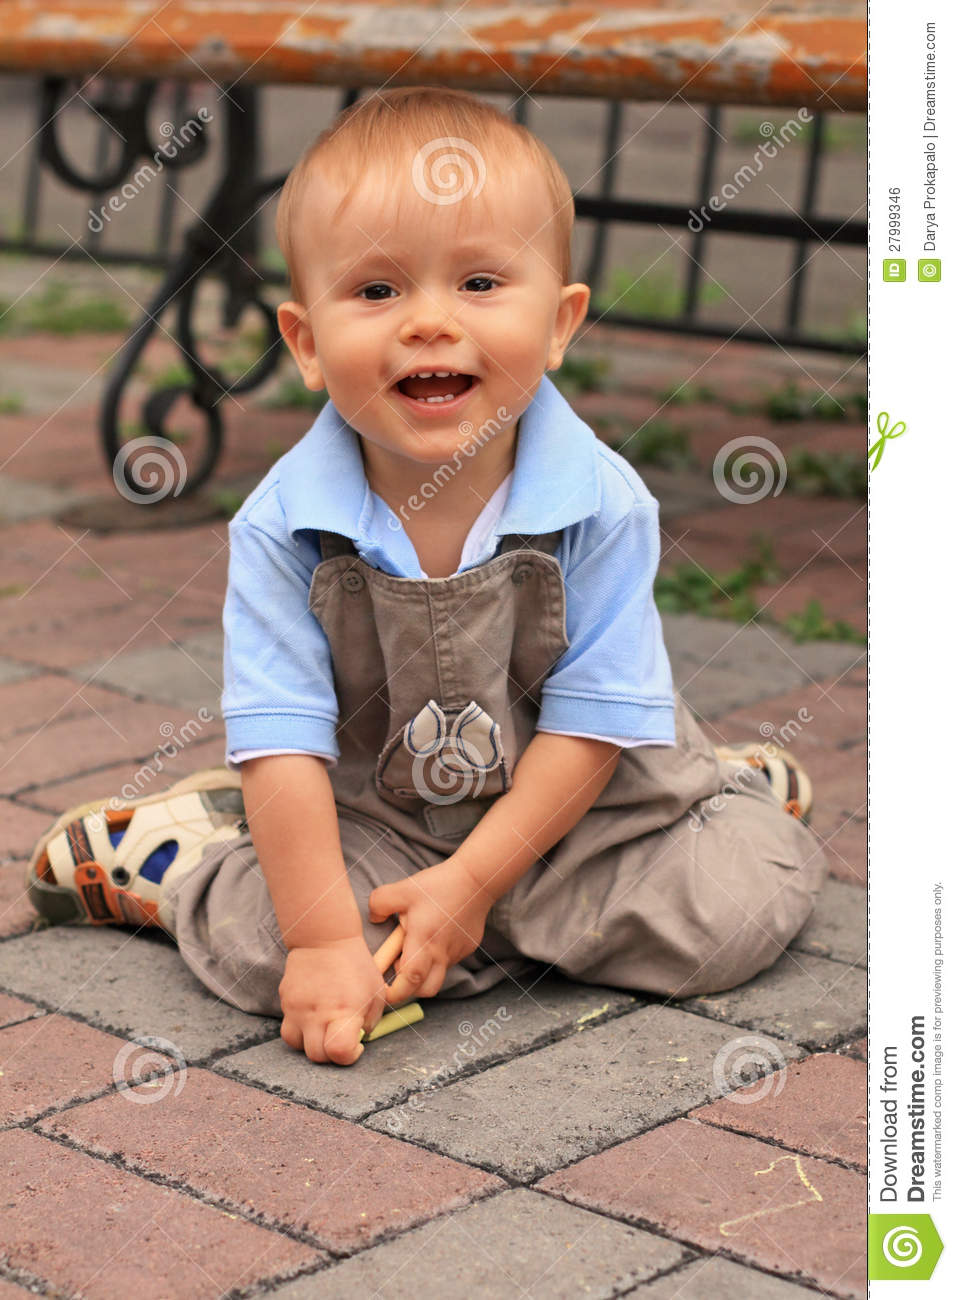 Funny Laughing Little Boy Playing Outdoors Darya Prokapalo thumb